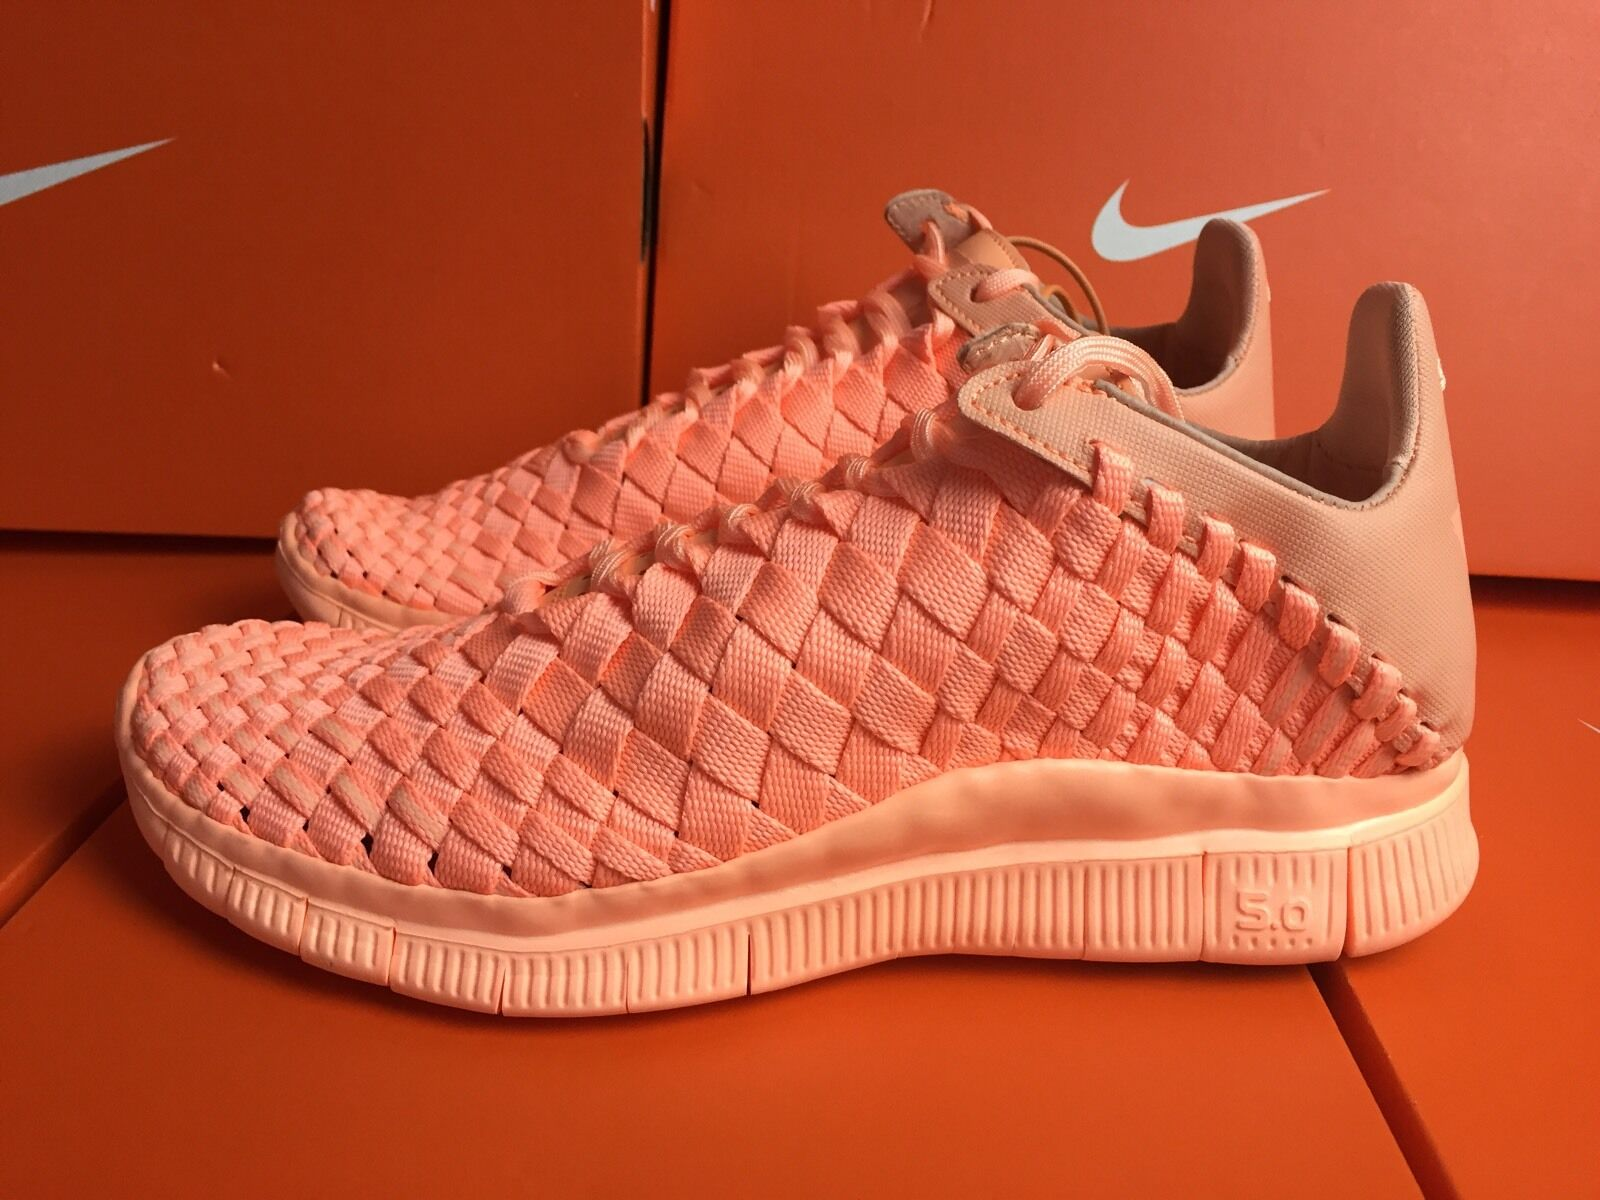 Nike Free Inneva Woven Tech SP Trainers UK 4 EUR 888 36.5 Sunset Orange 705797 888 EUR ef3c3d